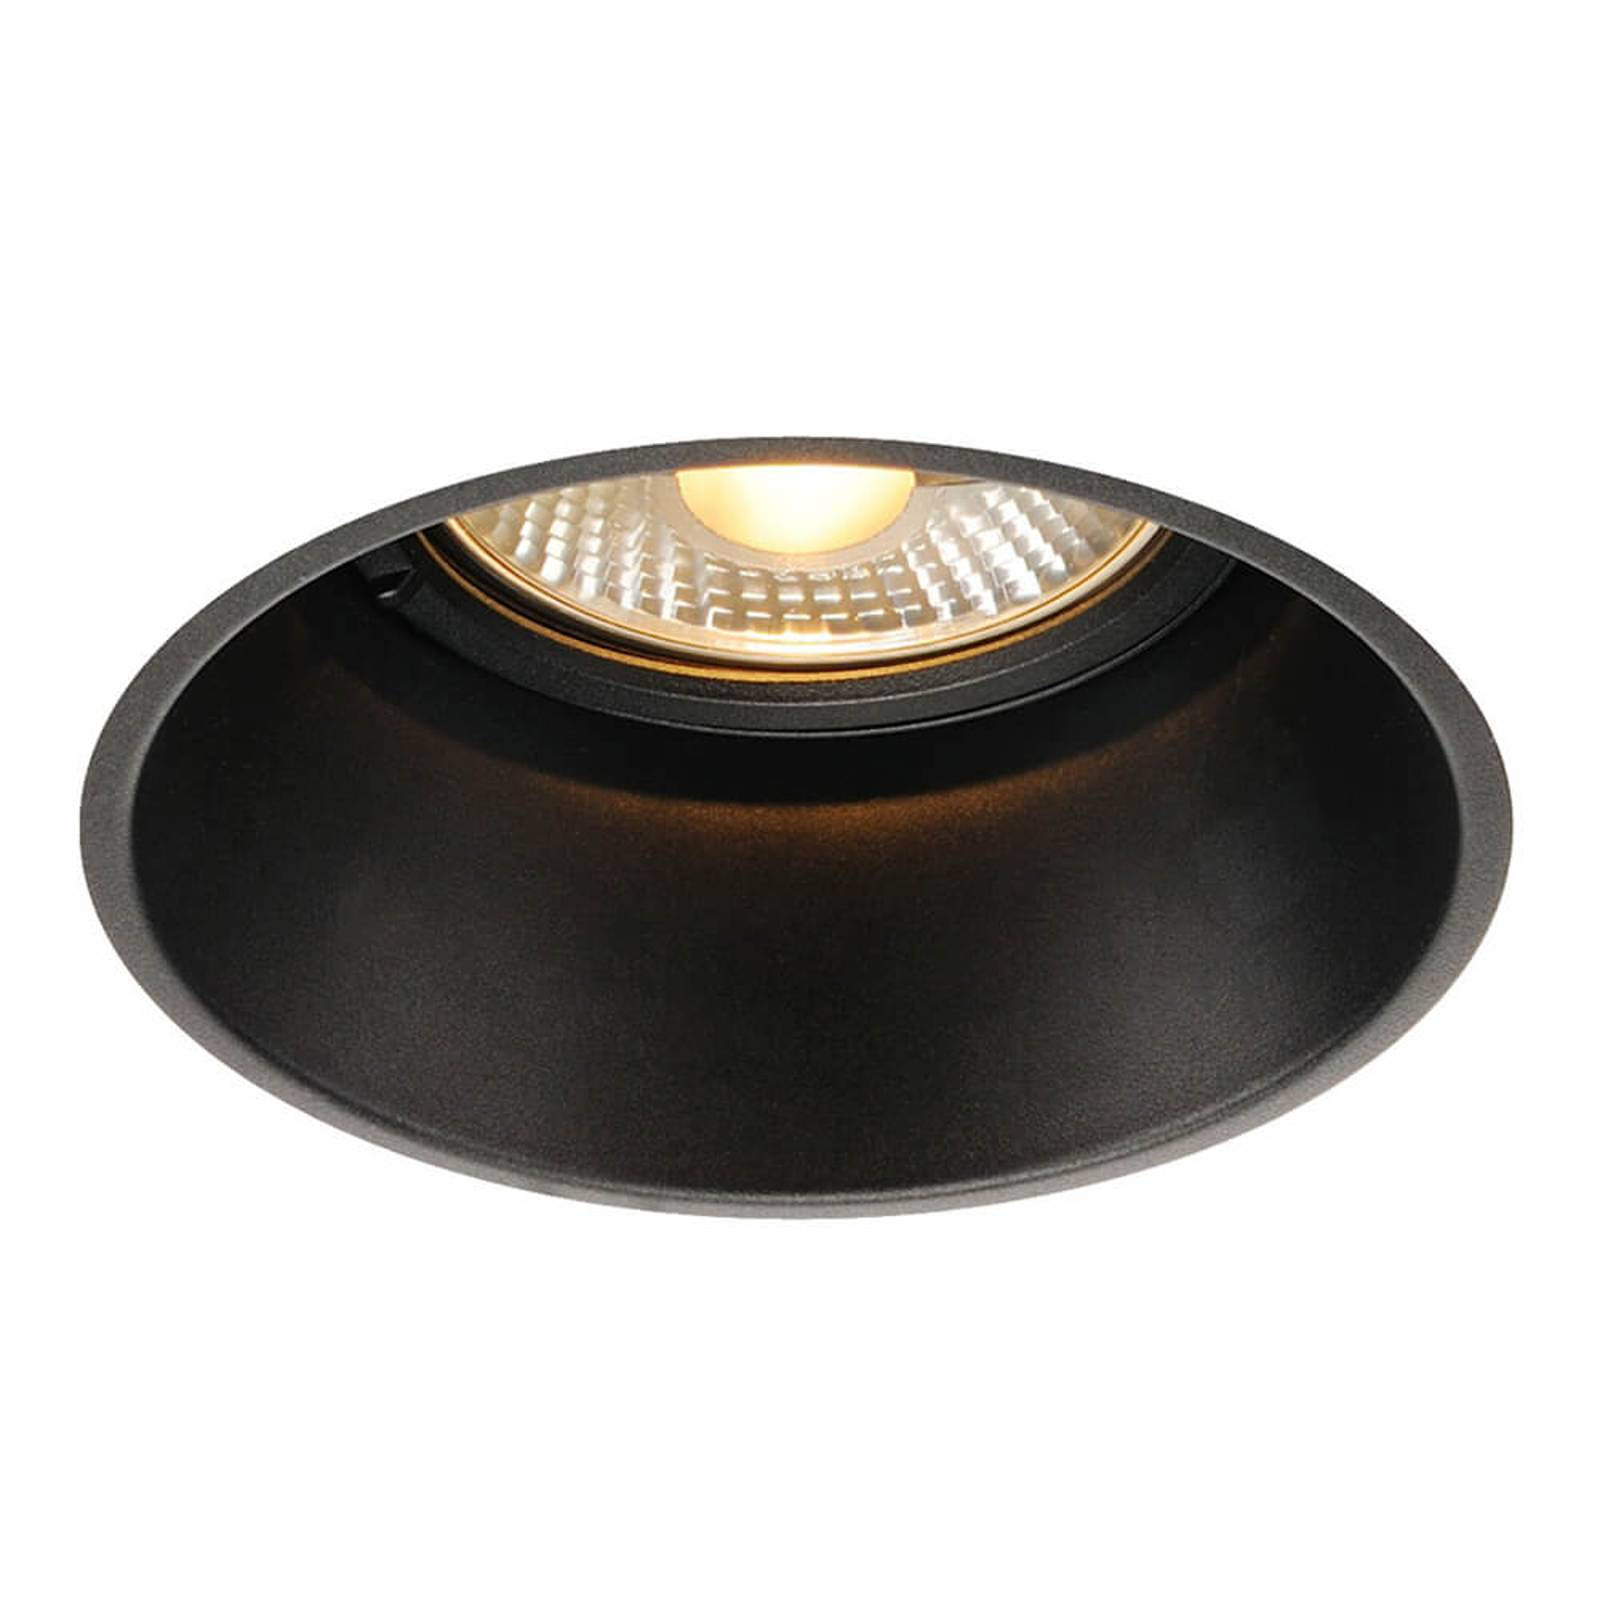 SLV Horn-T recessed light, black, reduced glare from SLV